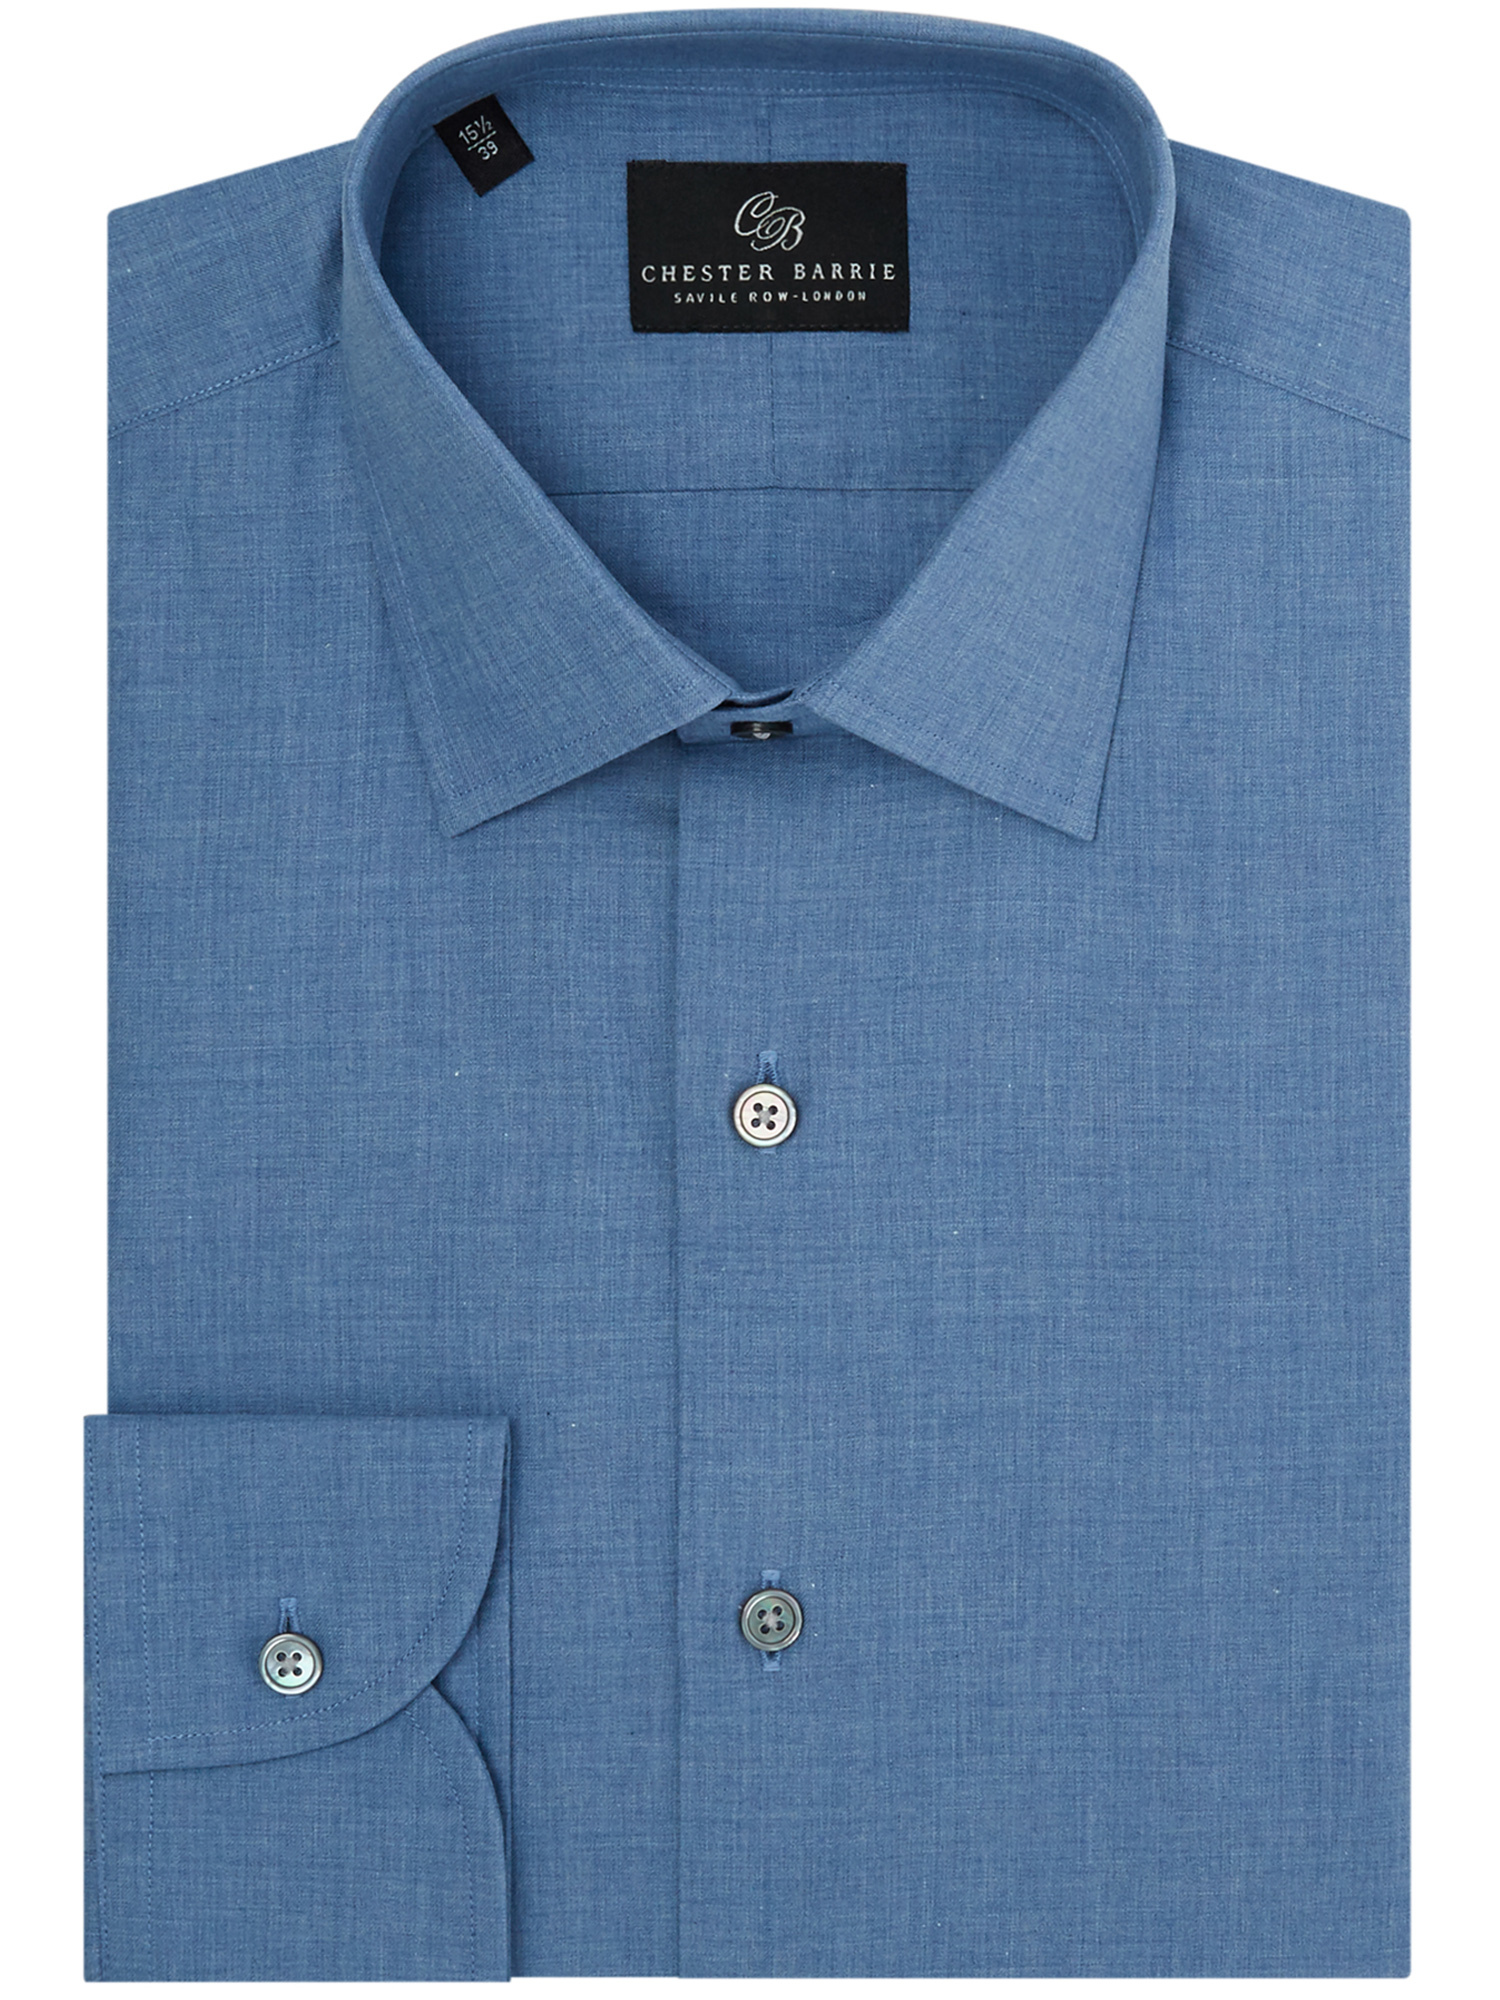 CHESTER BARRIE CHAMBRAY SHIRT